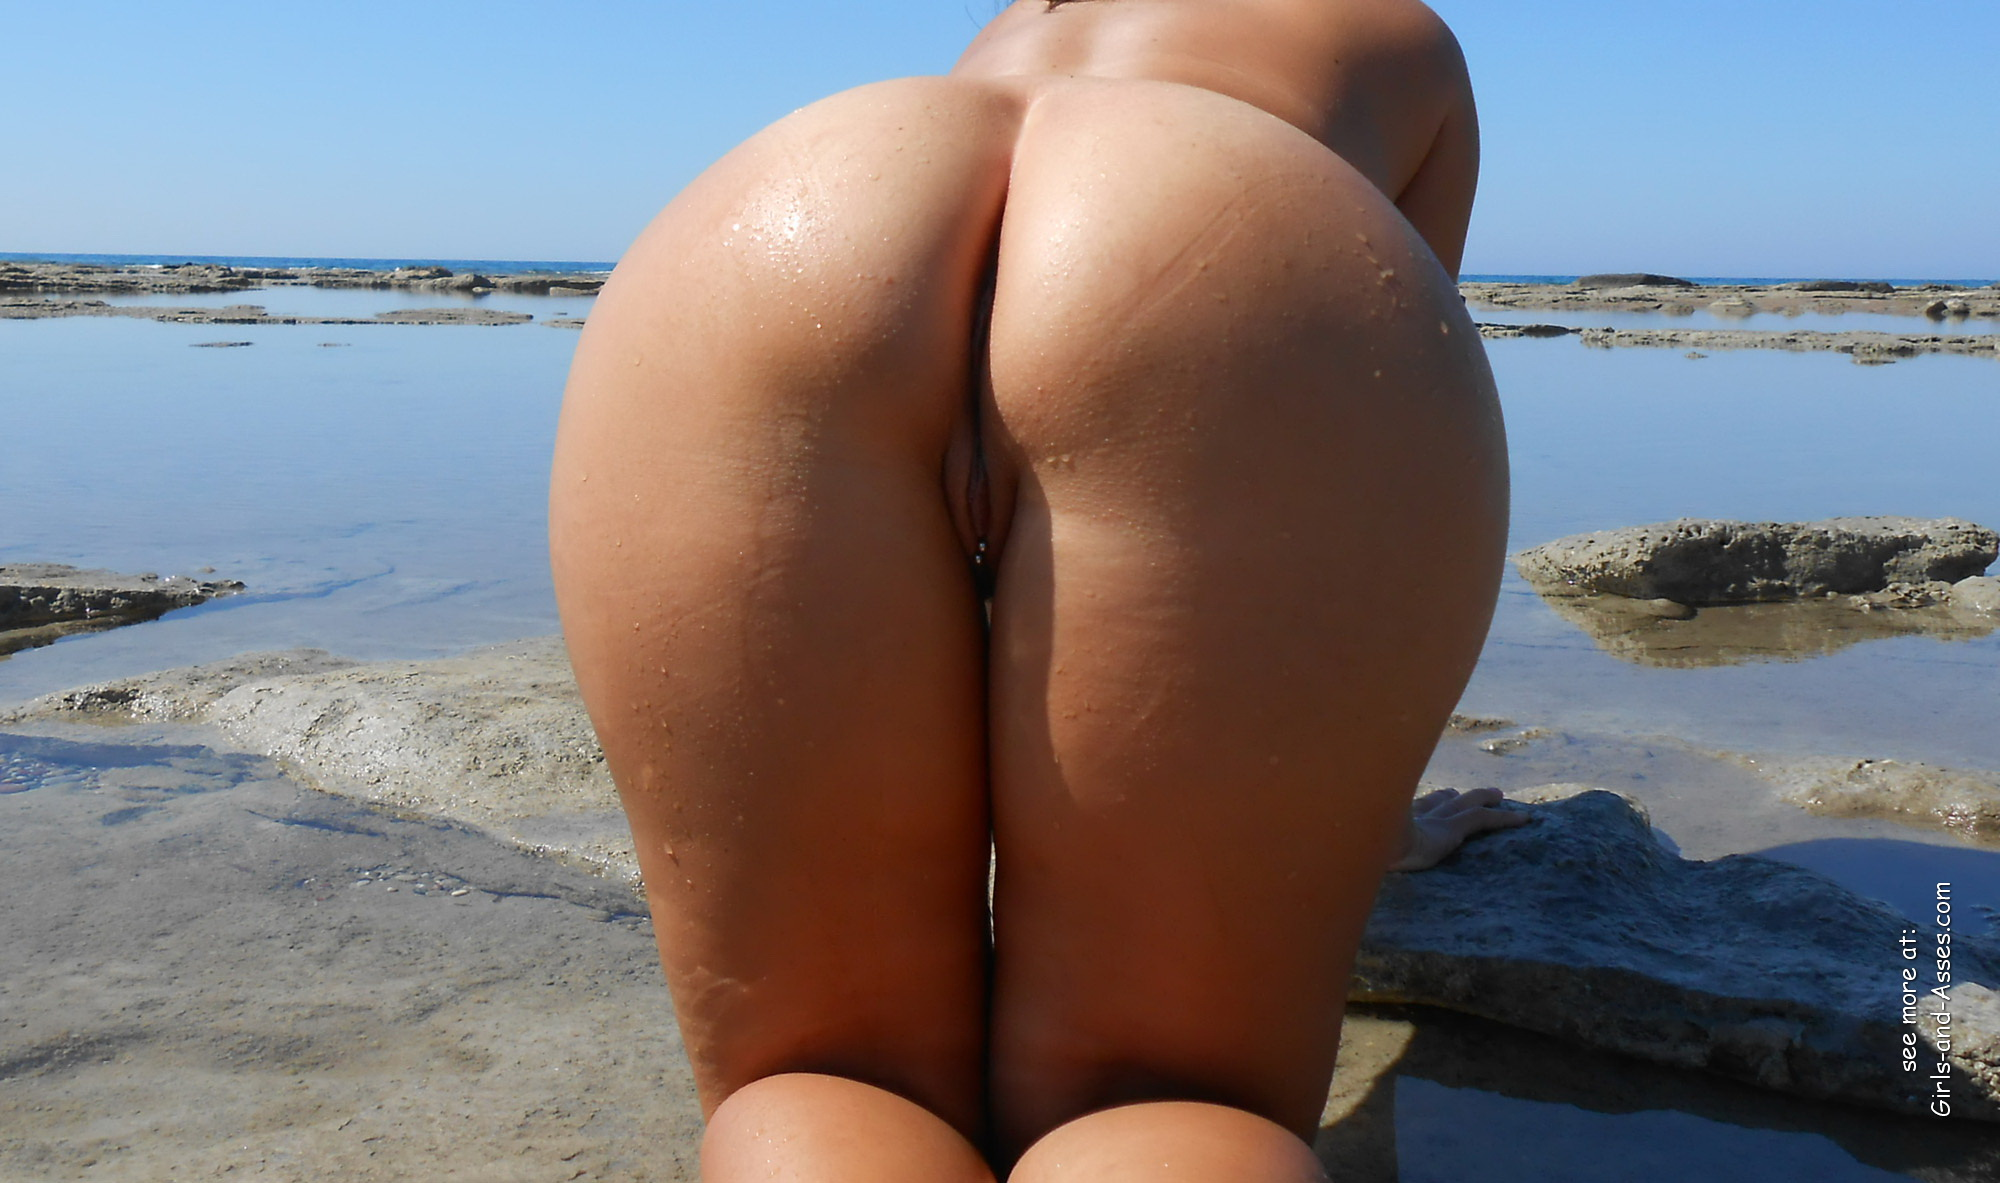 naked girl with big ass in a river picture 01331